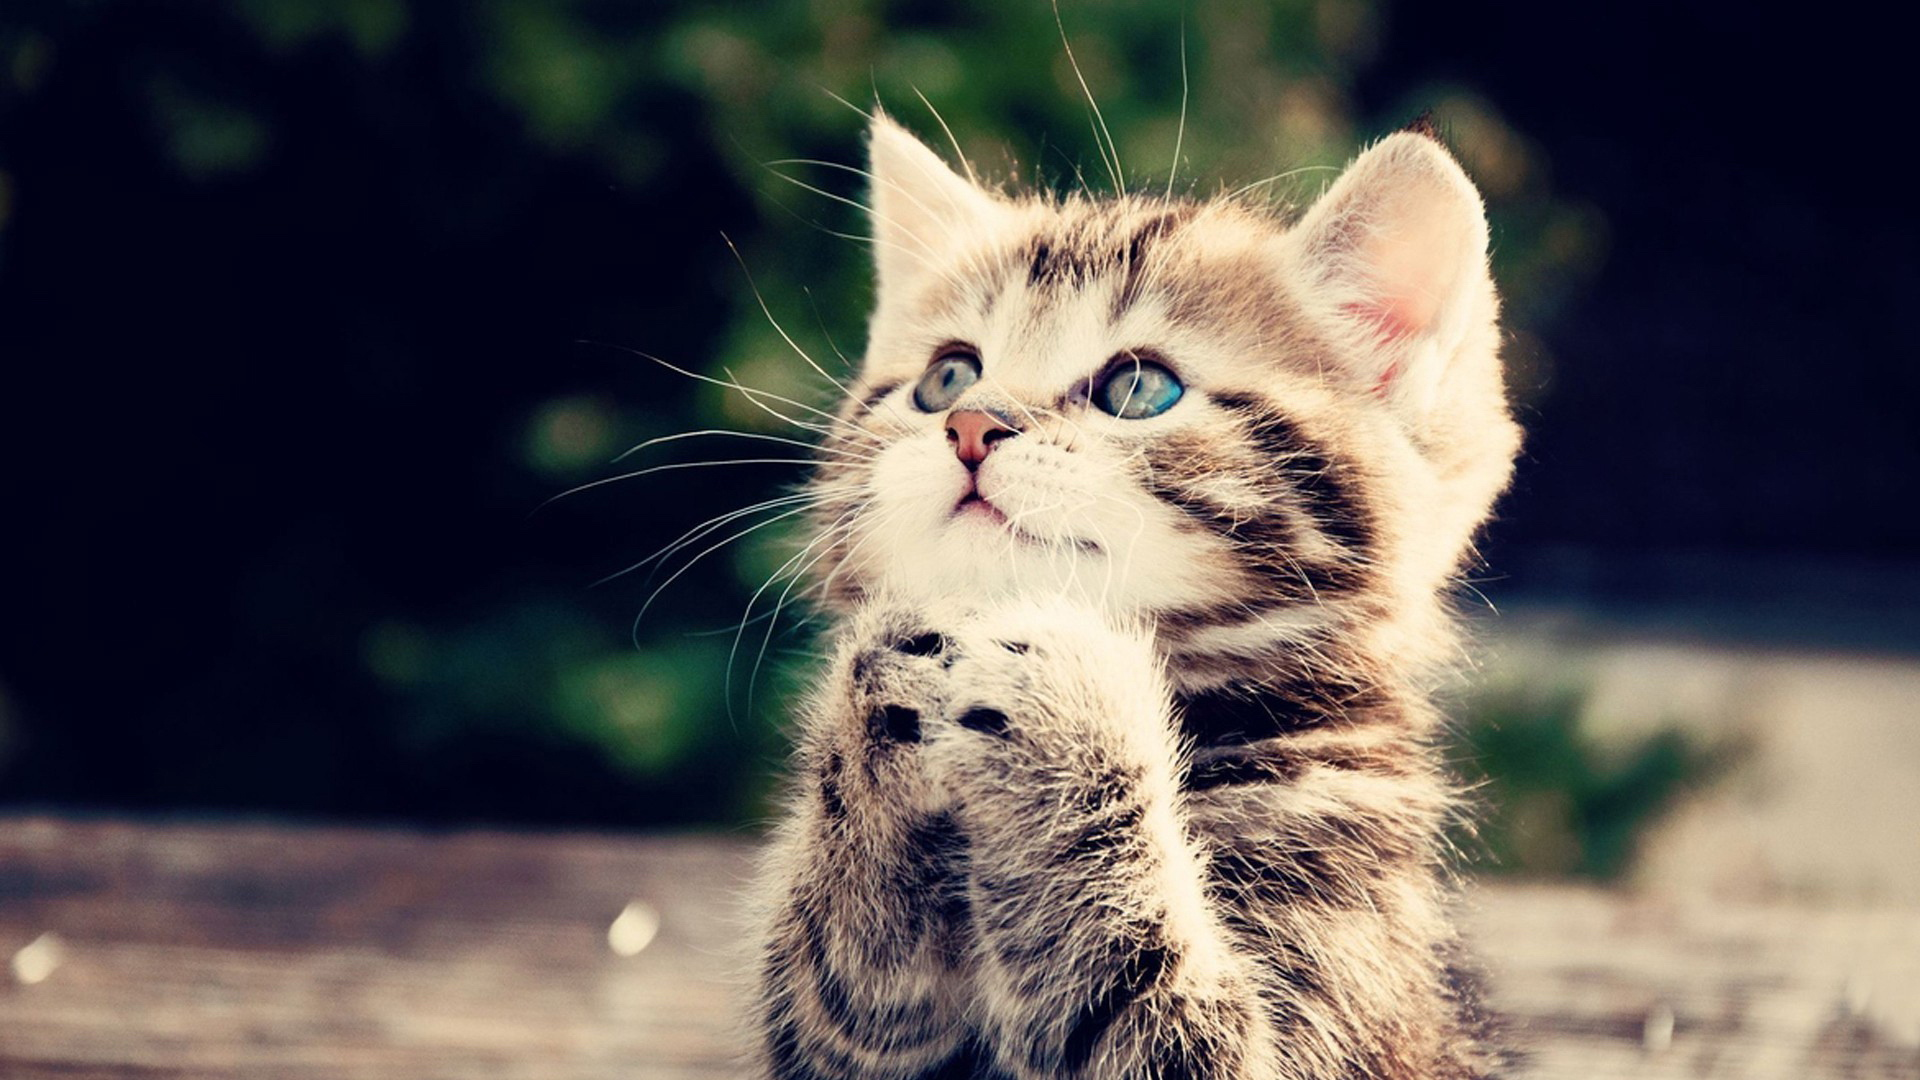 HUMOUR ALLAH MATOU - Page 3 Animal-wallpapers-cute-kitten-wallpaper-35723